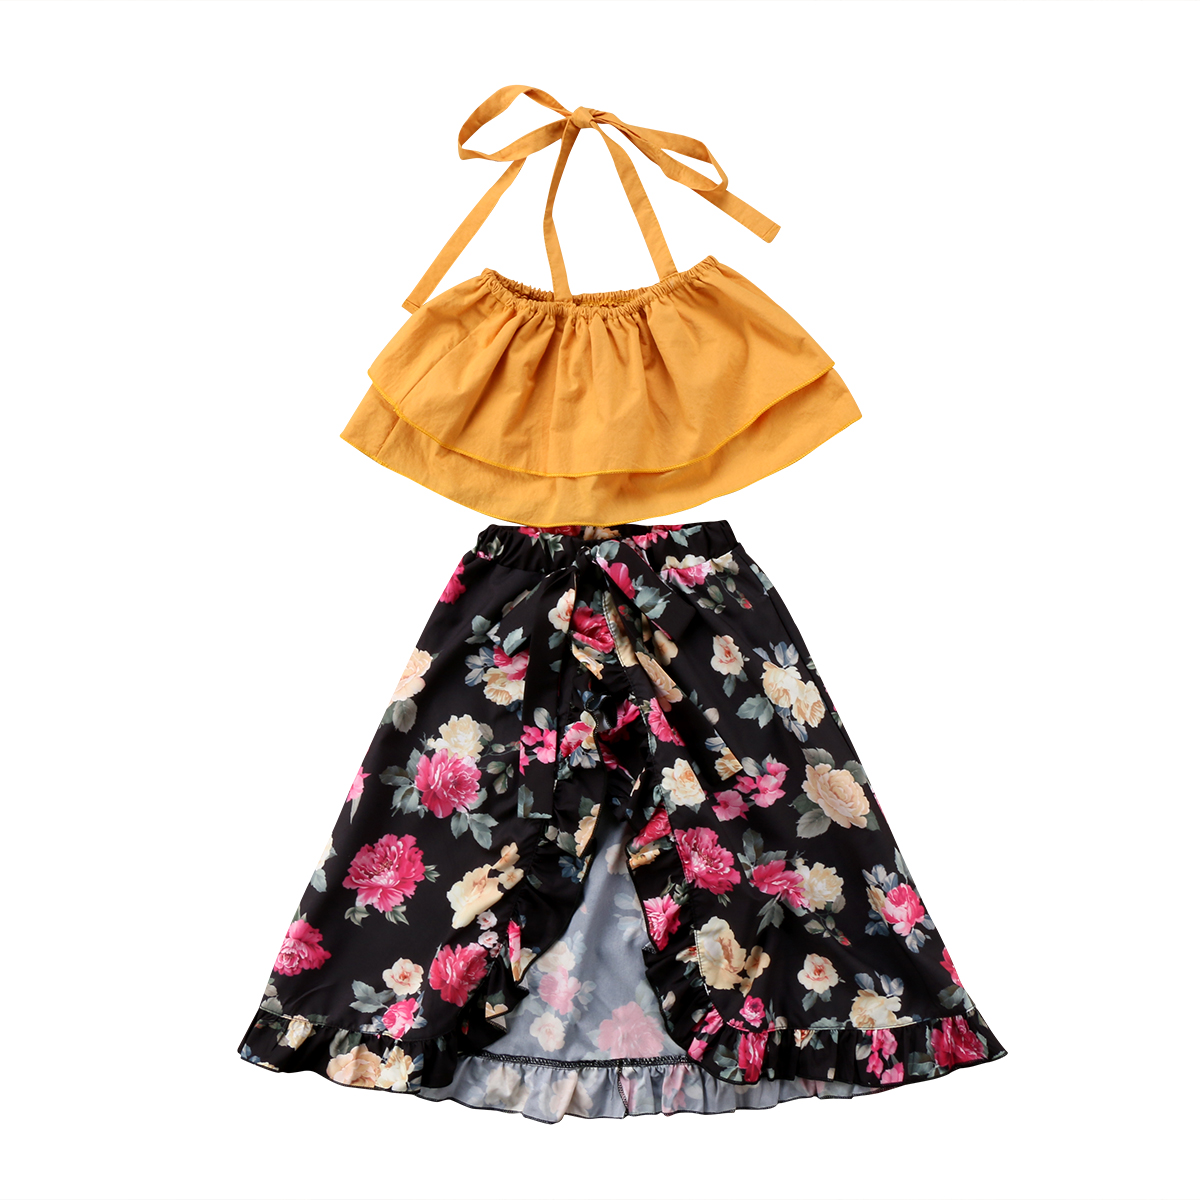 Pretty Toddler Baby Kids Girls Clothes Sets Sisters Floral Tops Shorts Skirts Flower Cotton Cute Outfits Clothing Set Girl 0-6T princess toddler kids baby girl clothes sets sequins tops vest tutu skirts cute ball headband 3pcs outfits set girls clothing